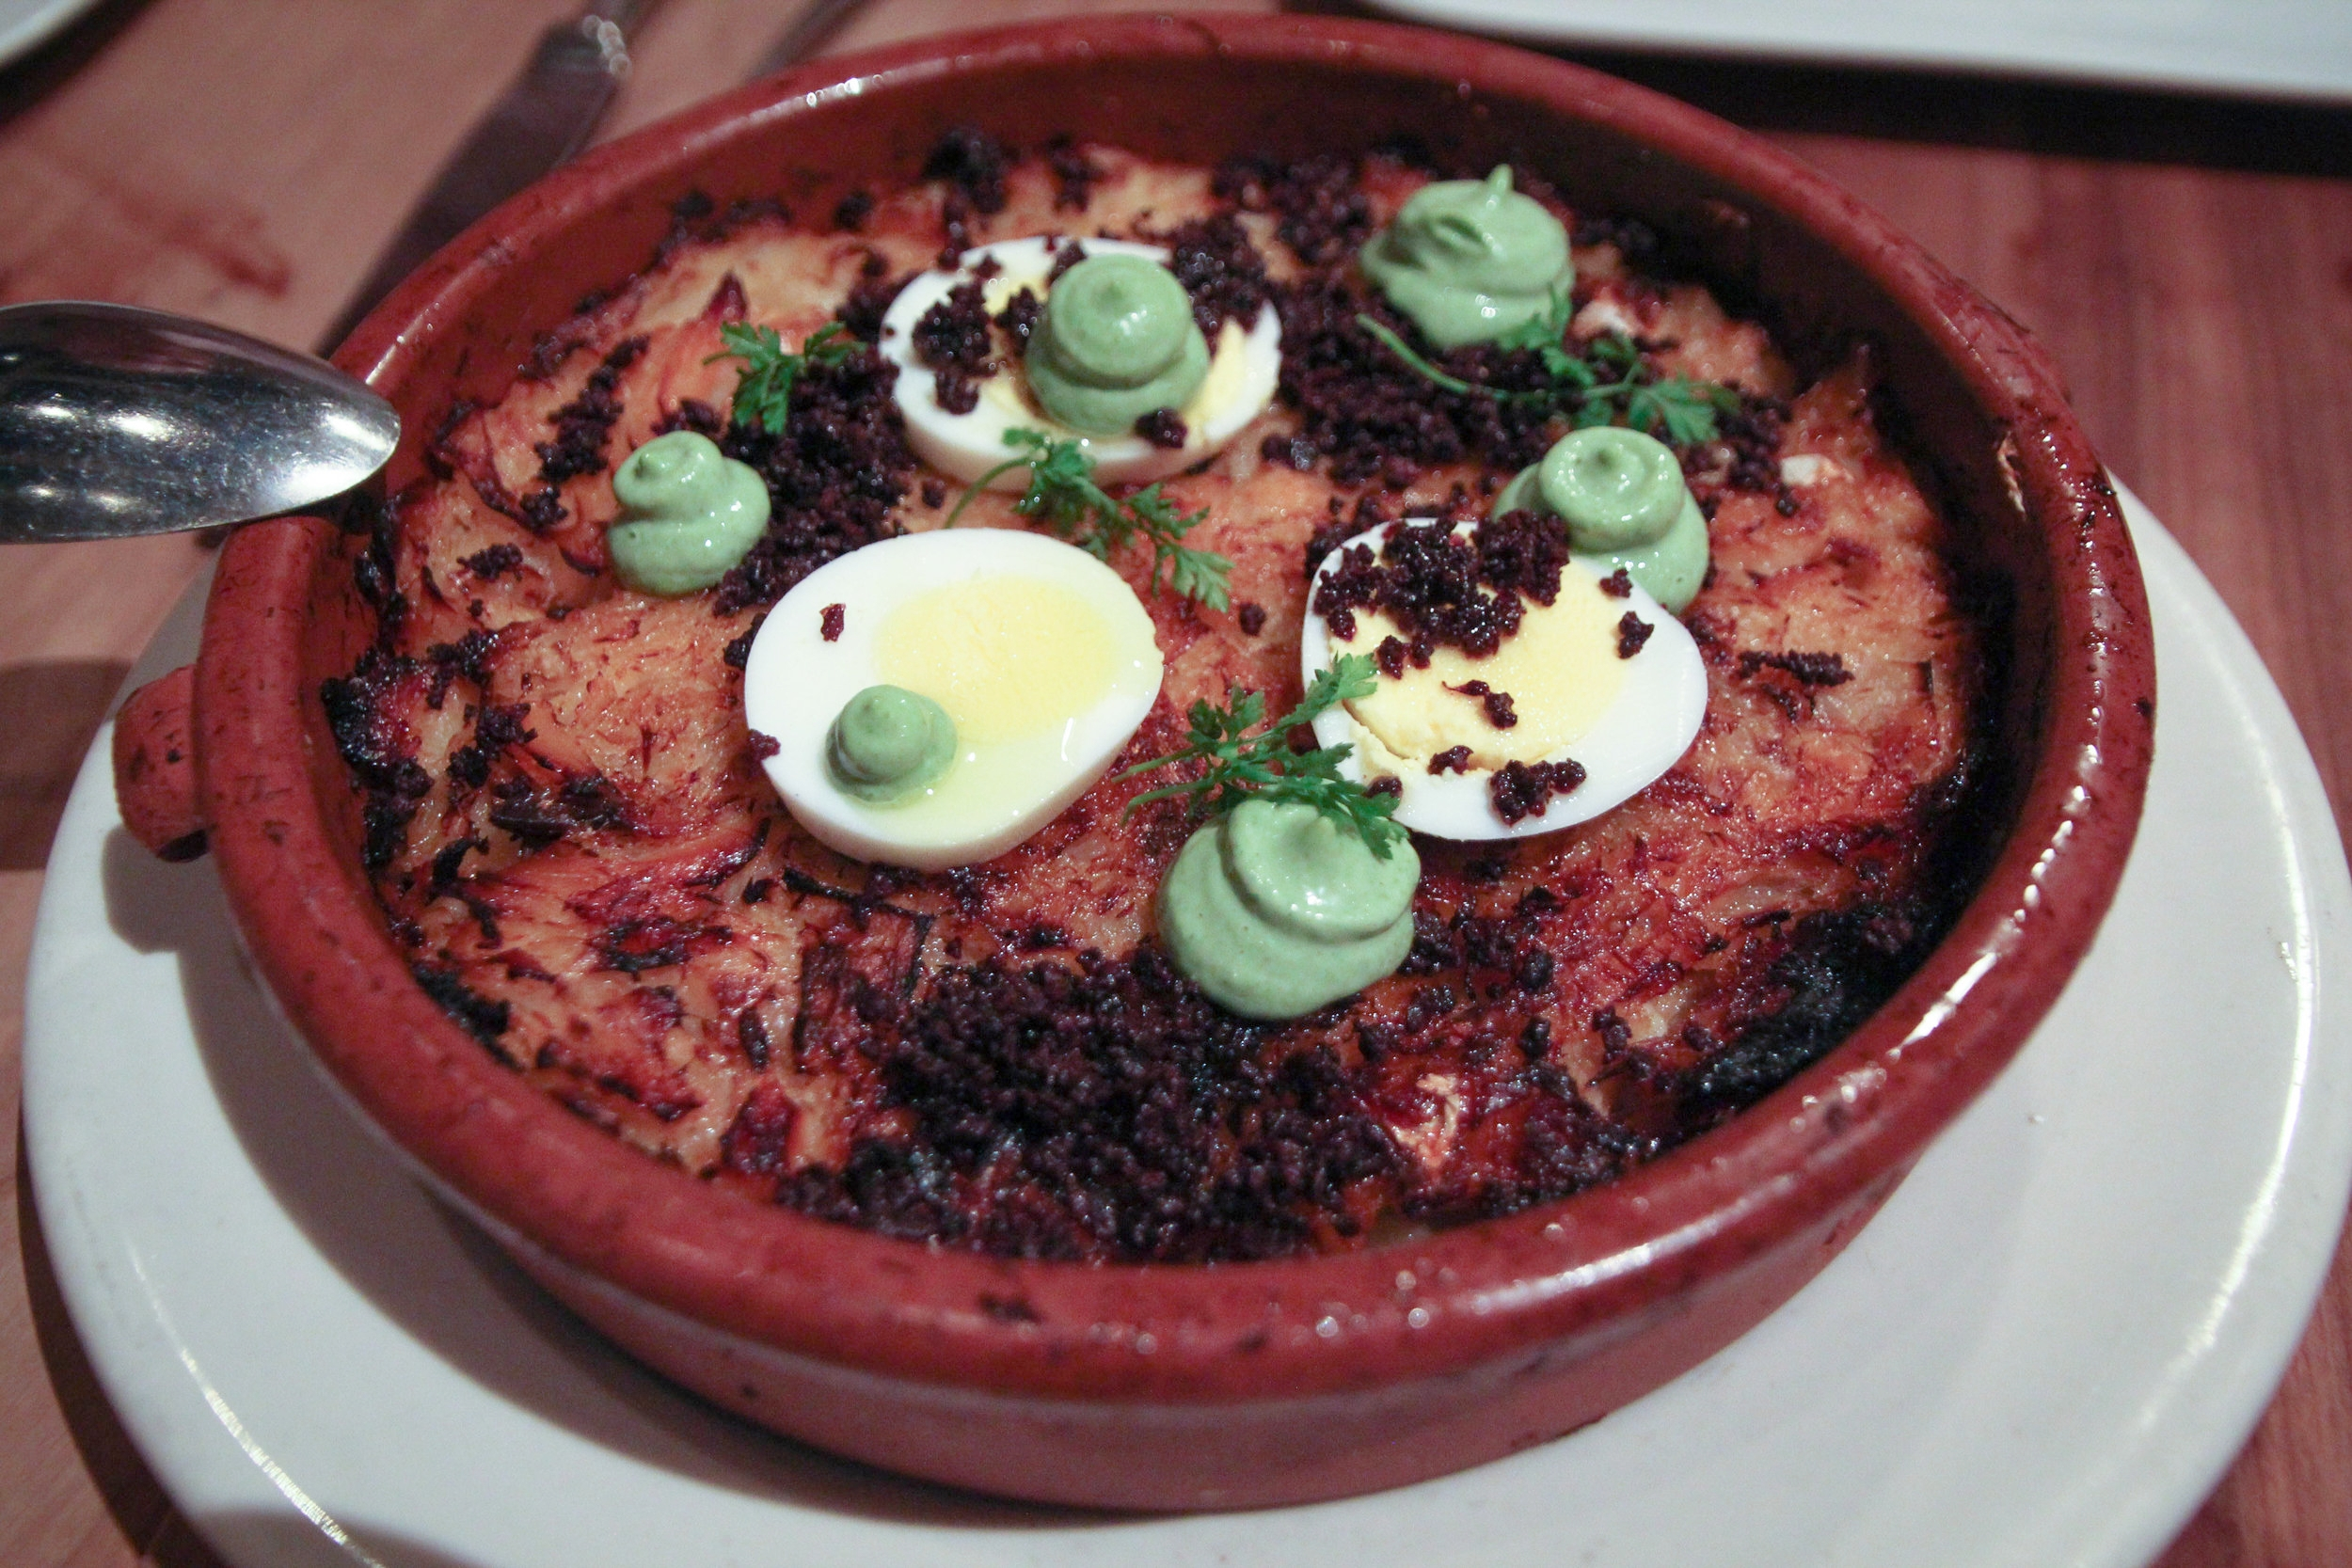 Bacalhau Gomes de Sá: baked salt cod casserole, potatoes, caramelized onions, parsley aioli, crumbled olive, egg